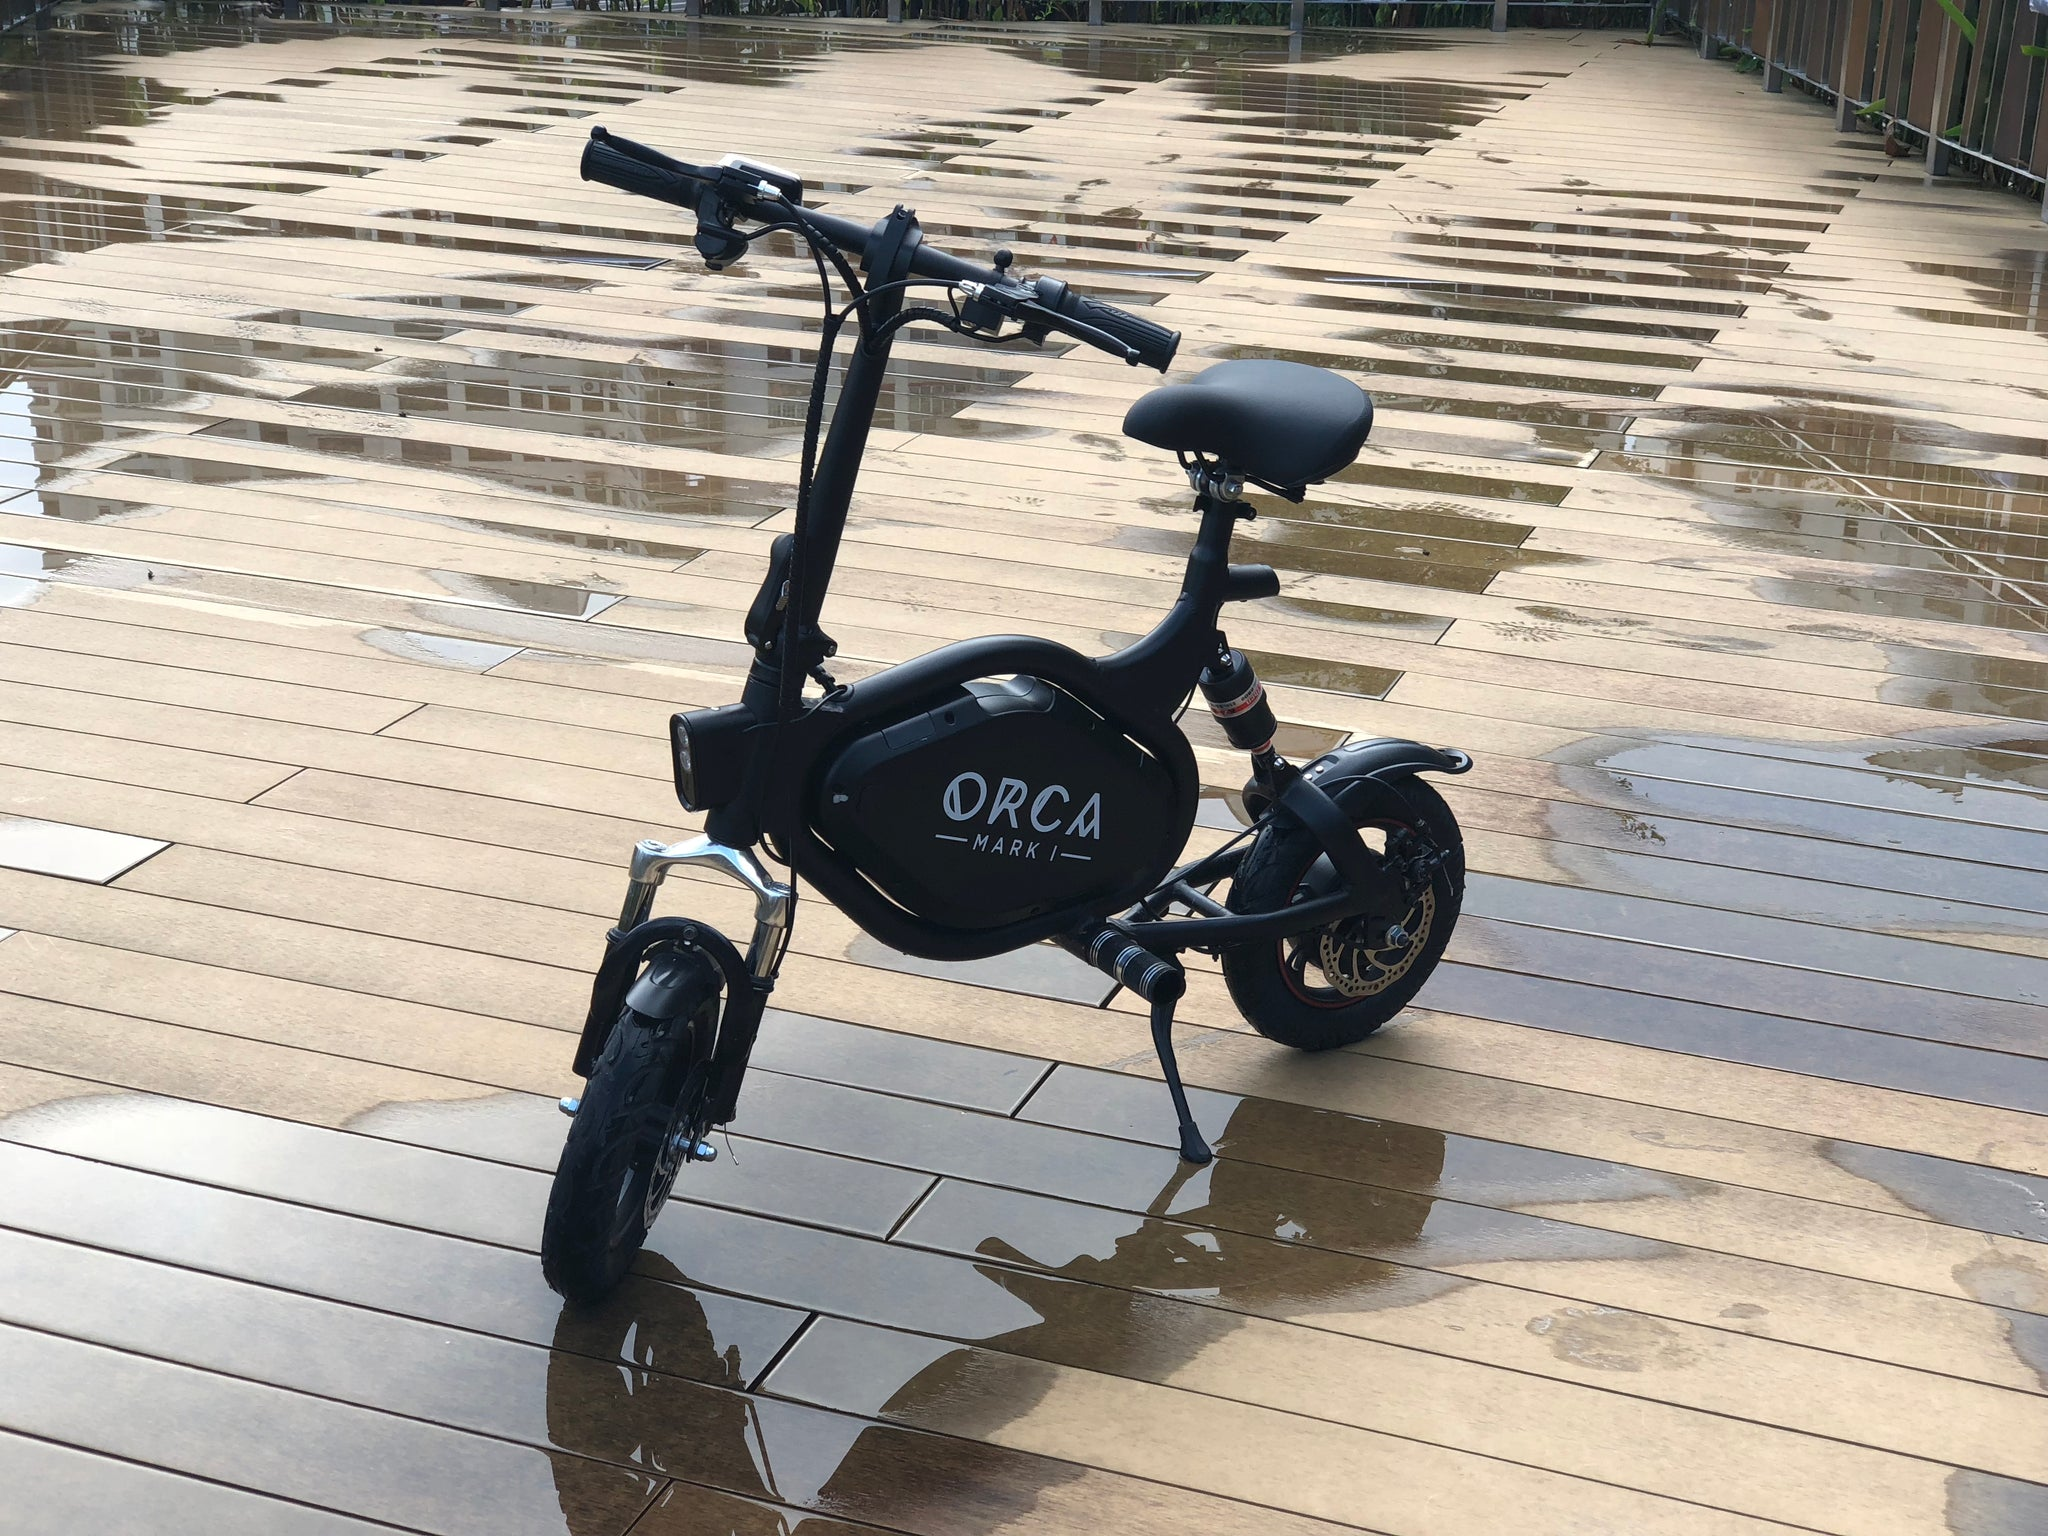 orca mark I electric scooter IP54 waterproof rating